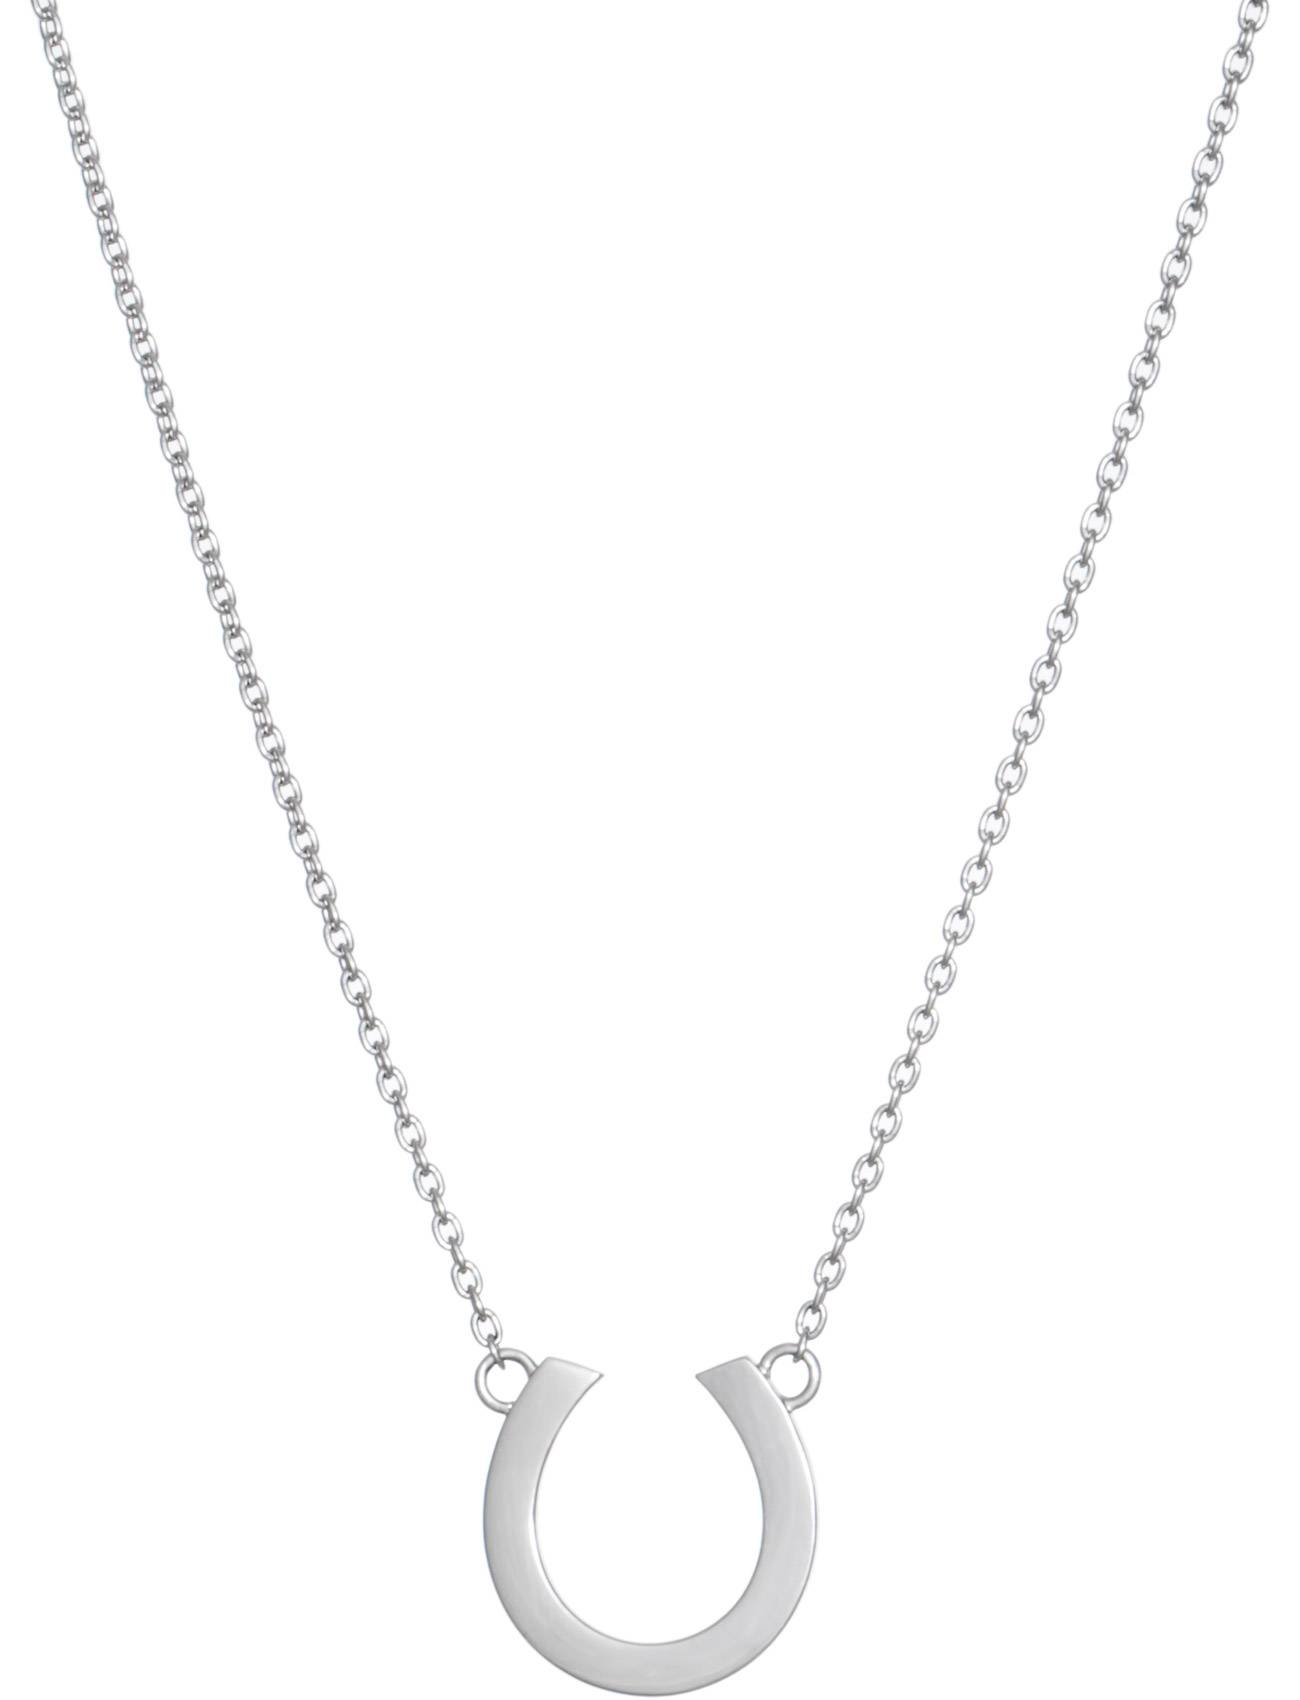 SOPHIE by SOPHIE Mini Horseshoe Necklace